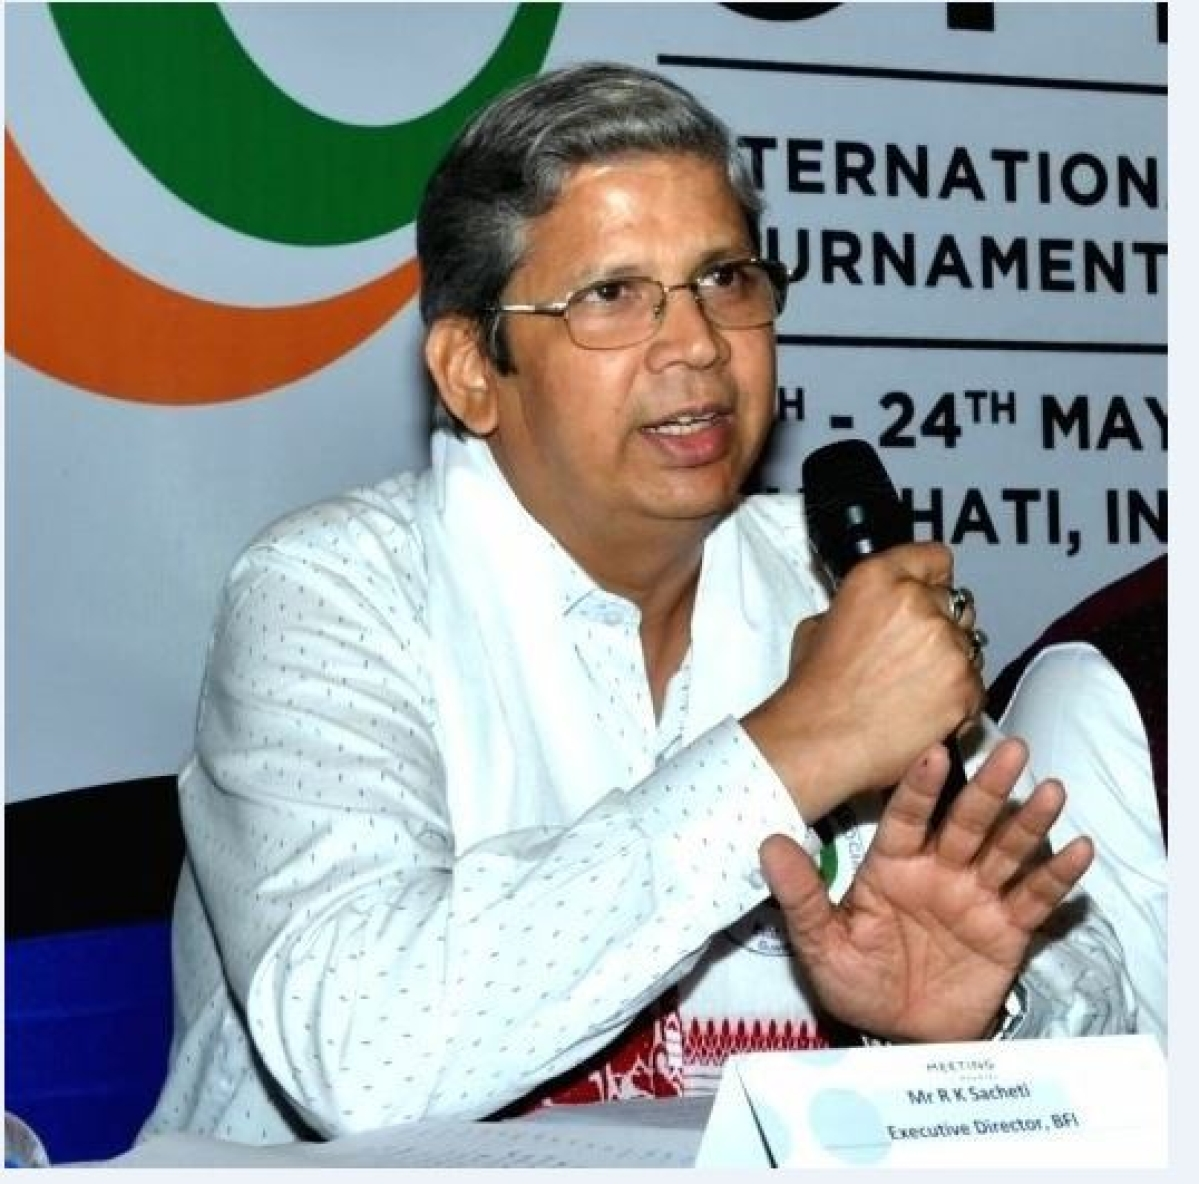 R K Sacheti, the The Boxing Federation of India's Executive Director